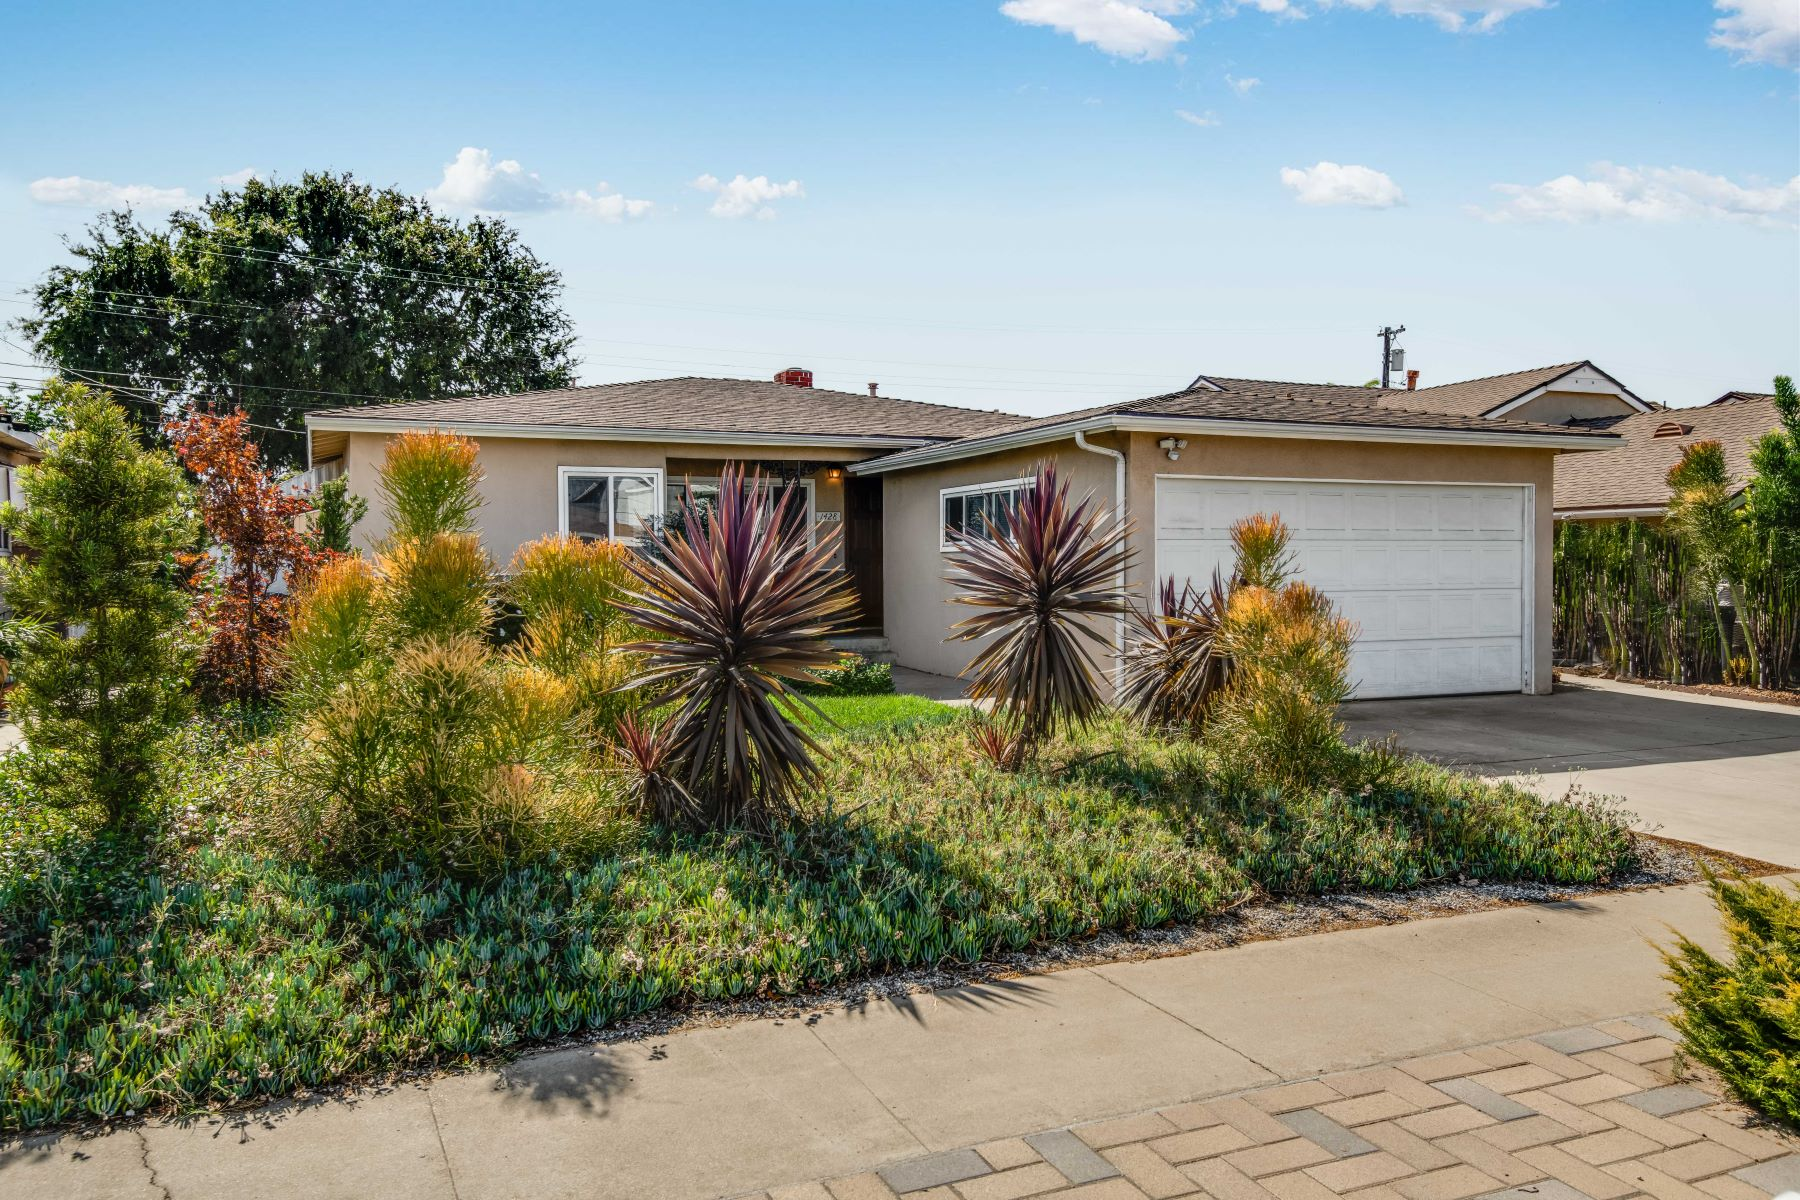 Single Family Homes for Sale at 1428 West 152nd Street, Gardena, CA 90247 1428 West 152nd Street Gardena, California 90247 United States